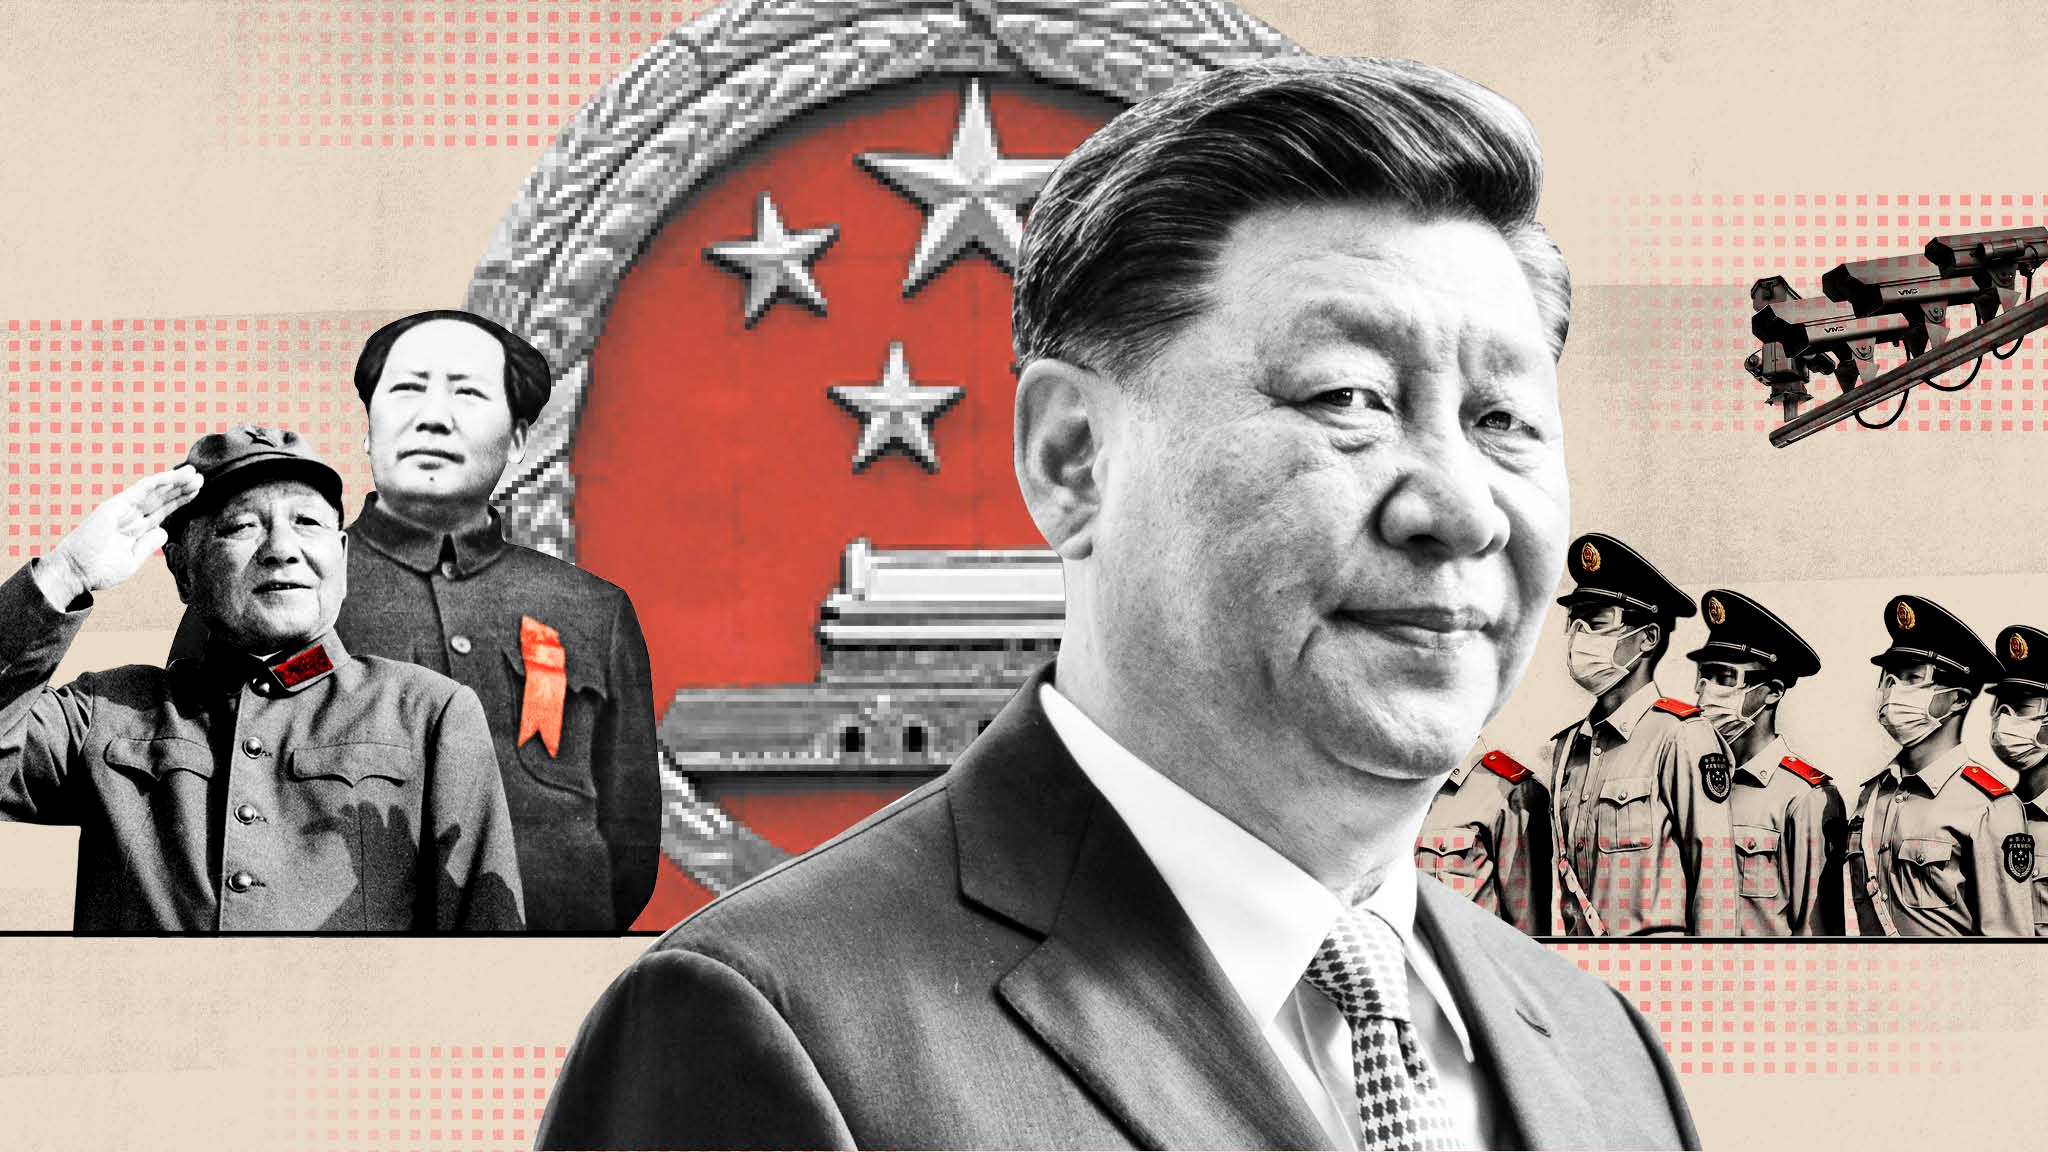 The Communist party at 100: is Xi Jinping's China on the right track? | Financial Times